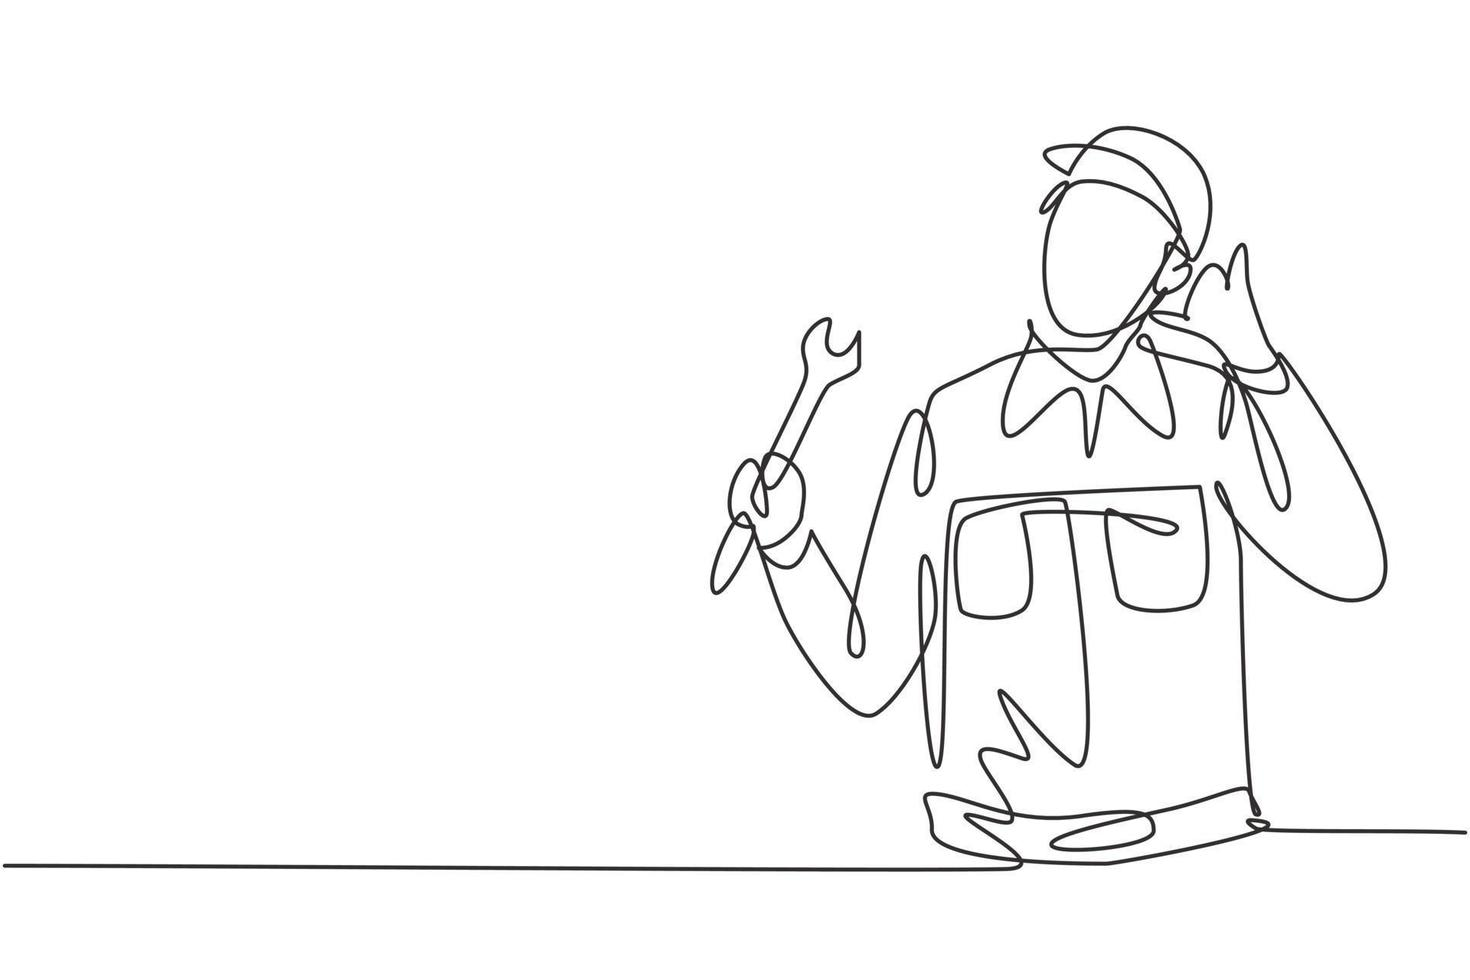 Continuous one line drawing mechanic with call me gesture and holding wrench works to fix broken car engine in garage. Success business concept. Single line draw design vector graphic illustration